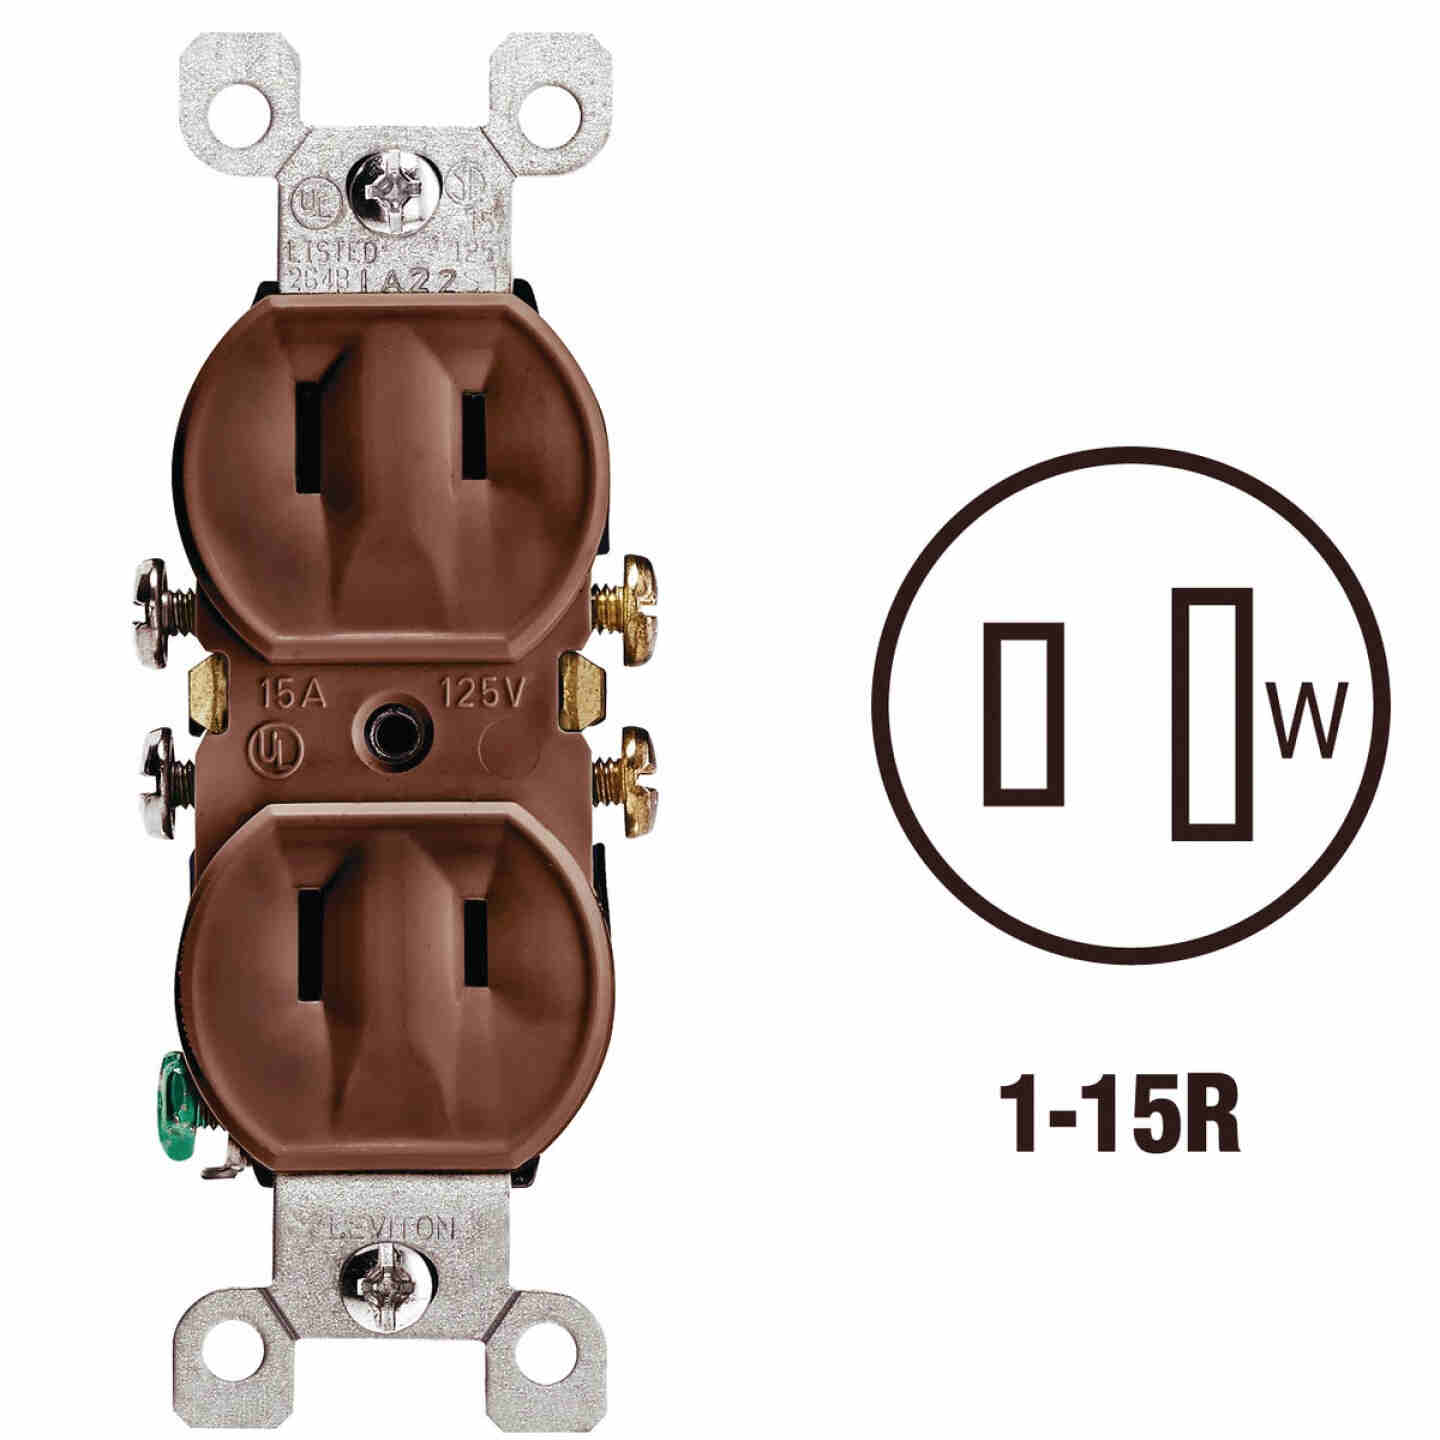 Leviton 15A Brown Residential Grade 1-15R Duplex Outlet Image 1